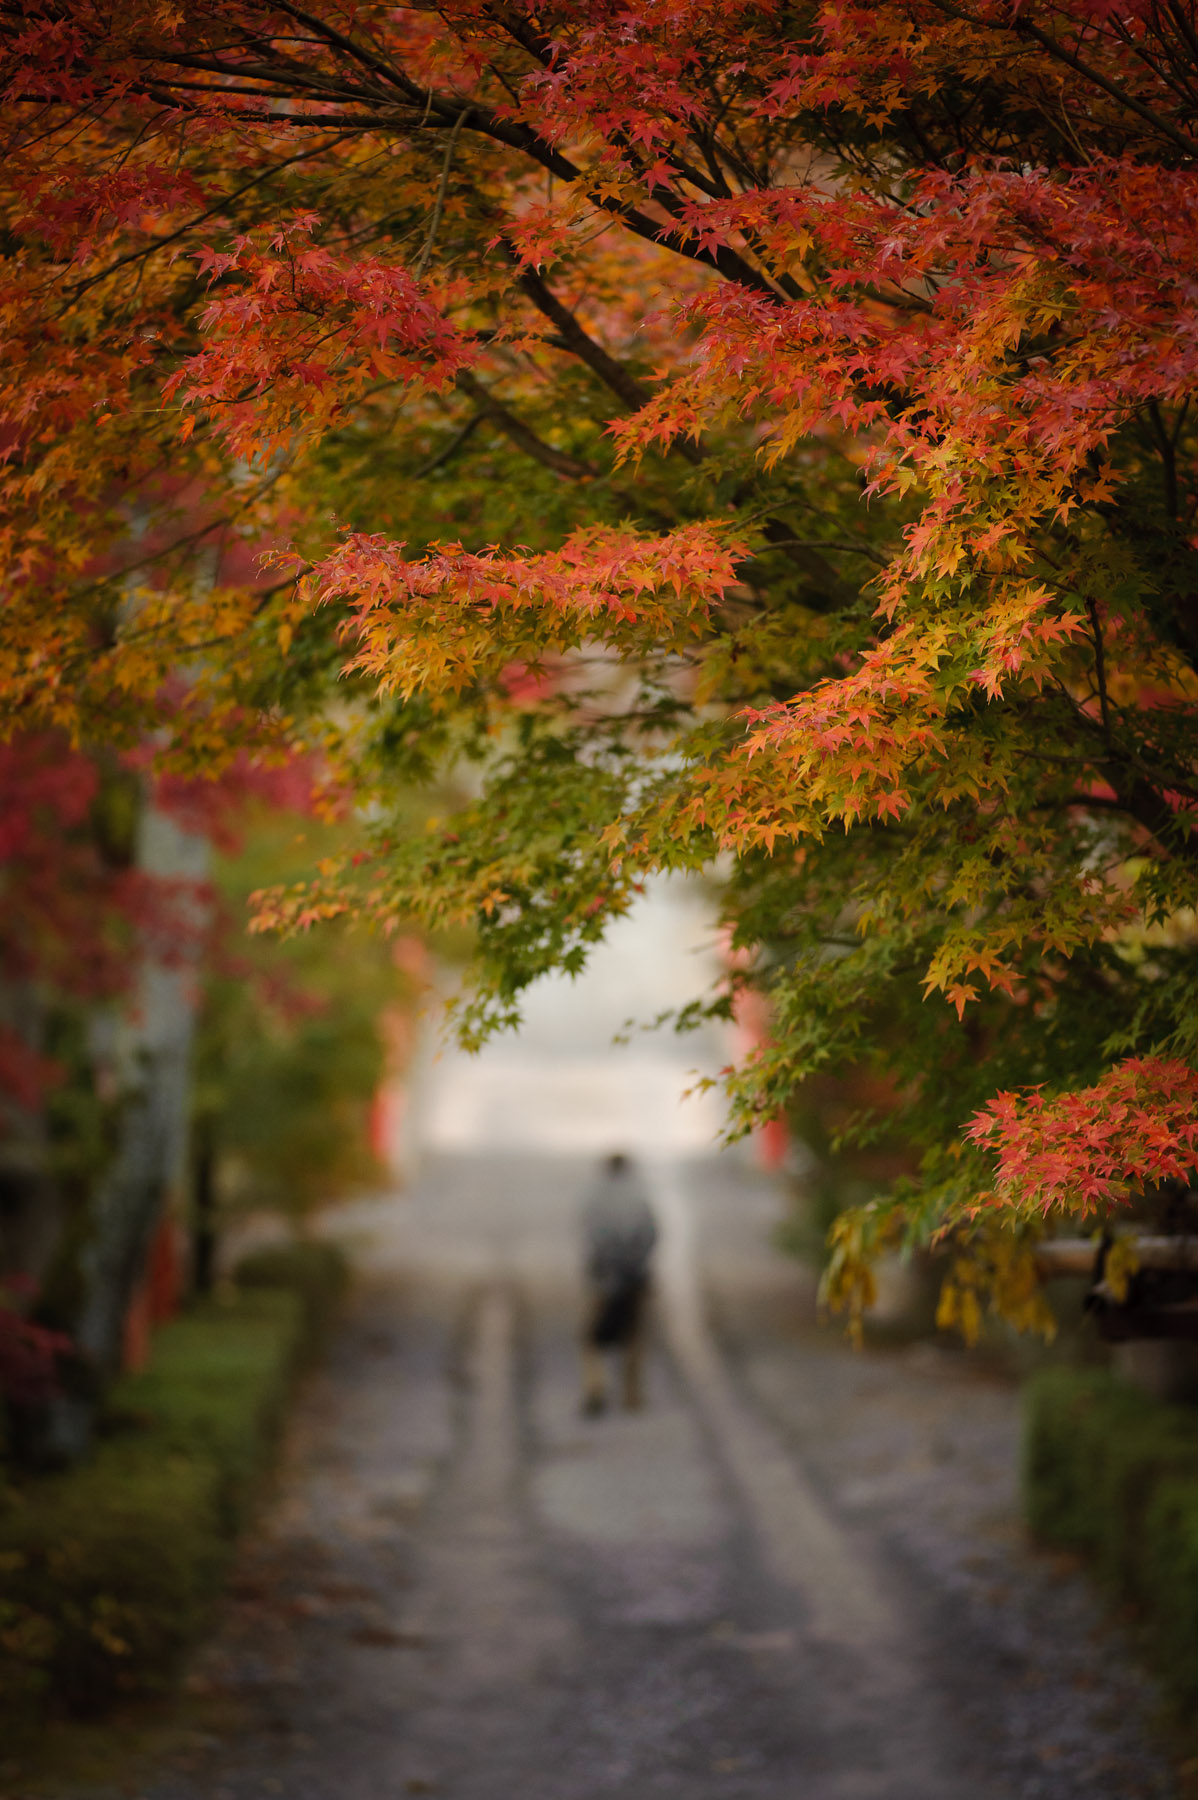 Late Fall Desktop Wallpaper Jeffrey Friedl S Blog 187 Another Amazing Trip To Kyoto S